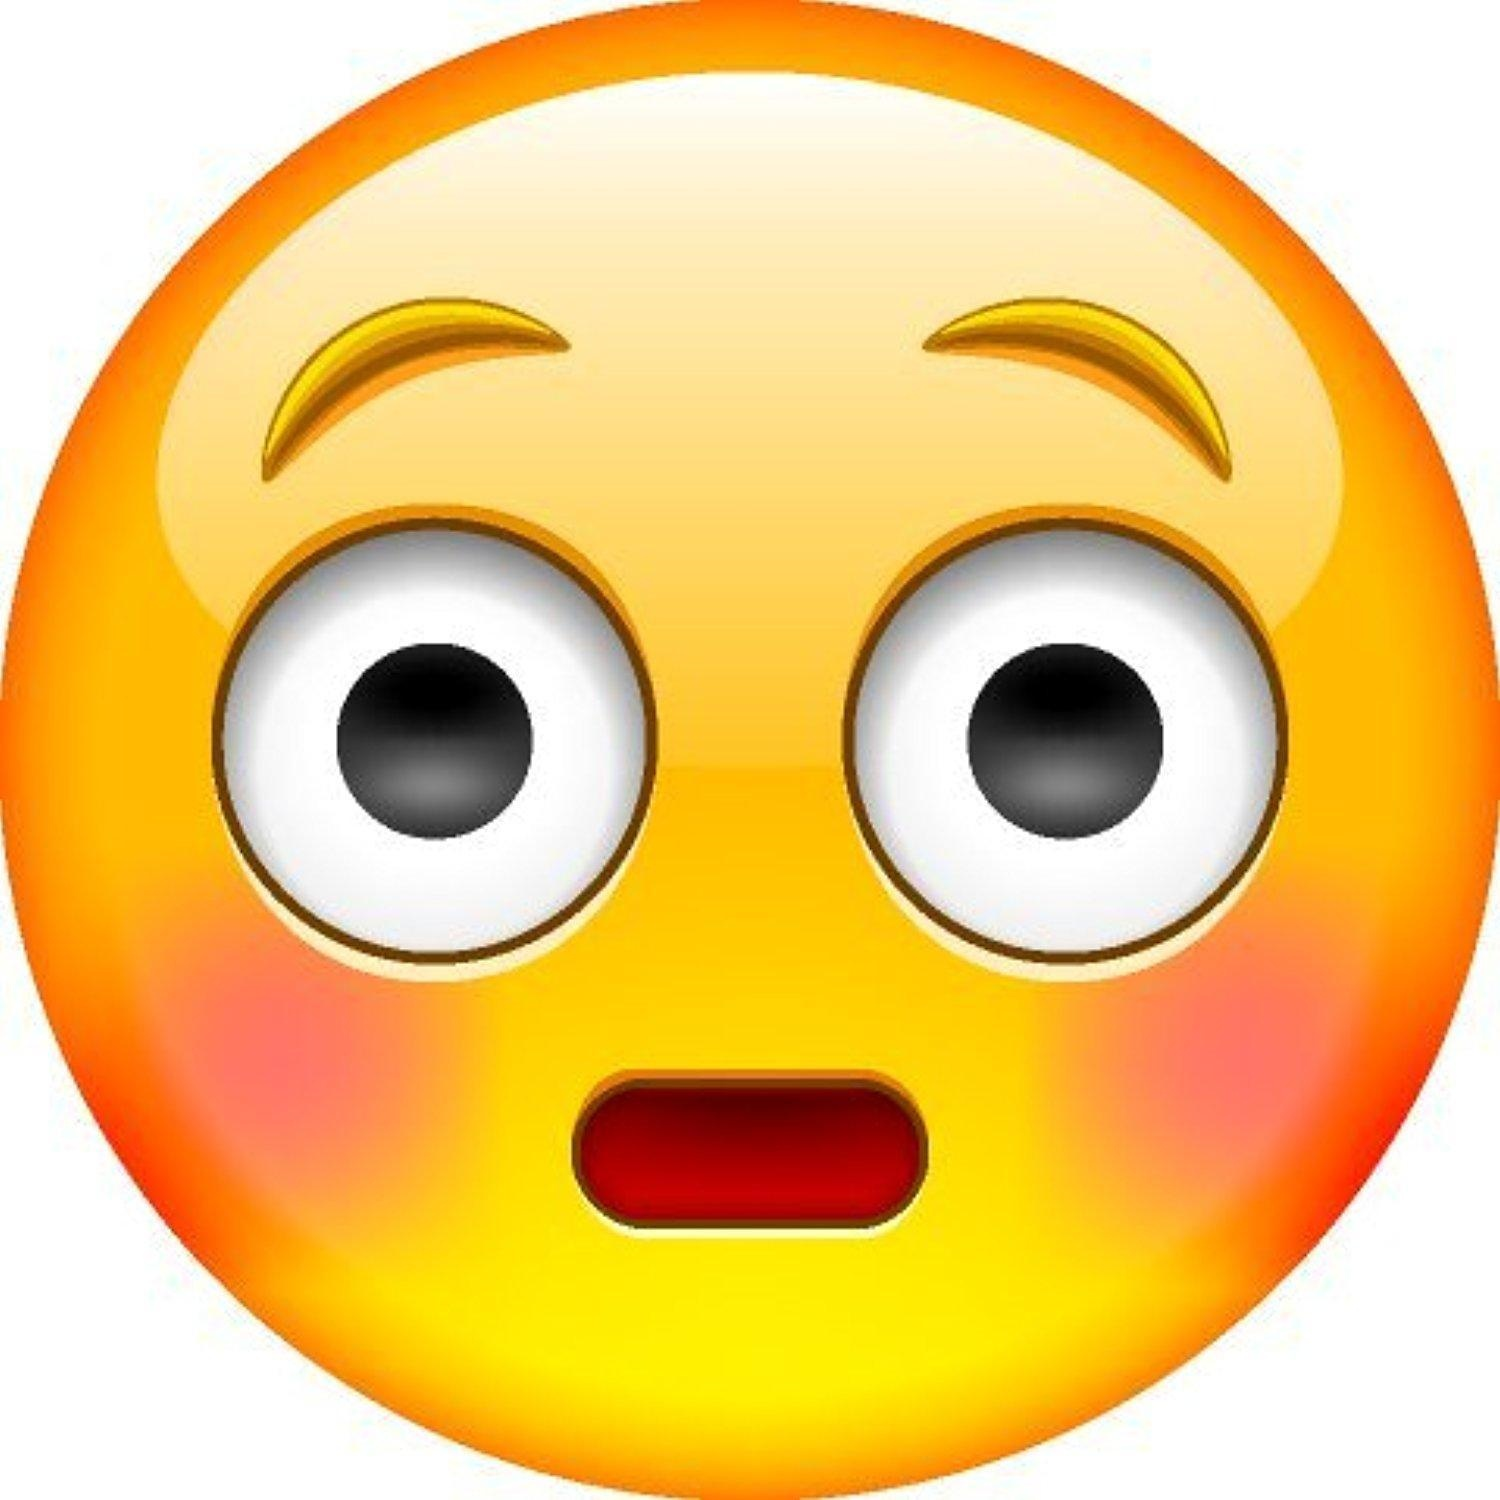 Happy Surprised Smiley Face - ClipArt Best